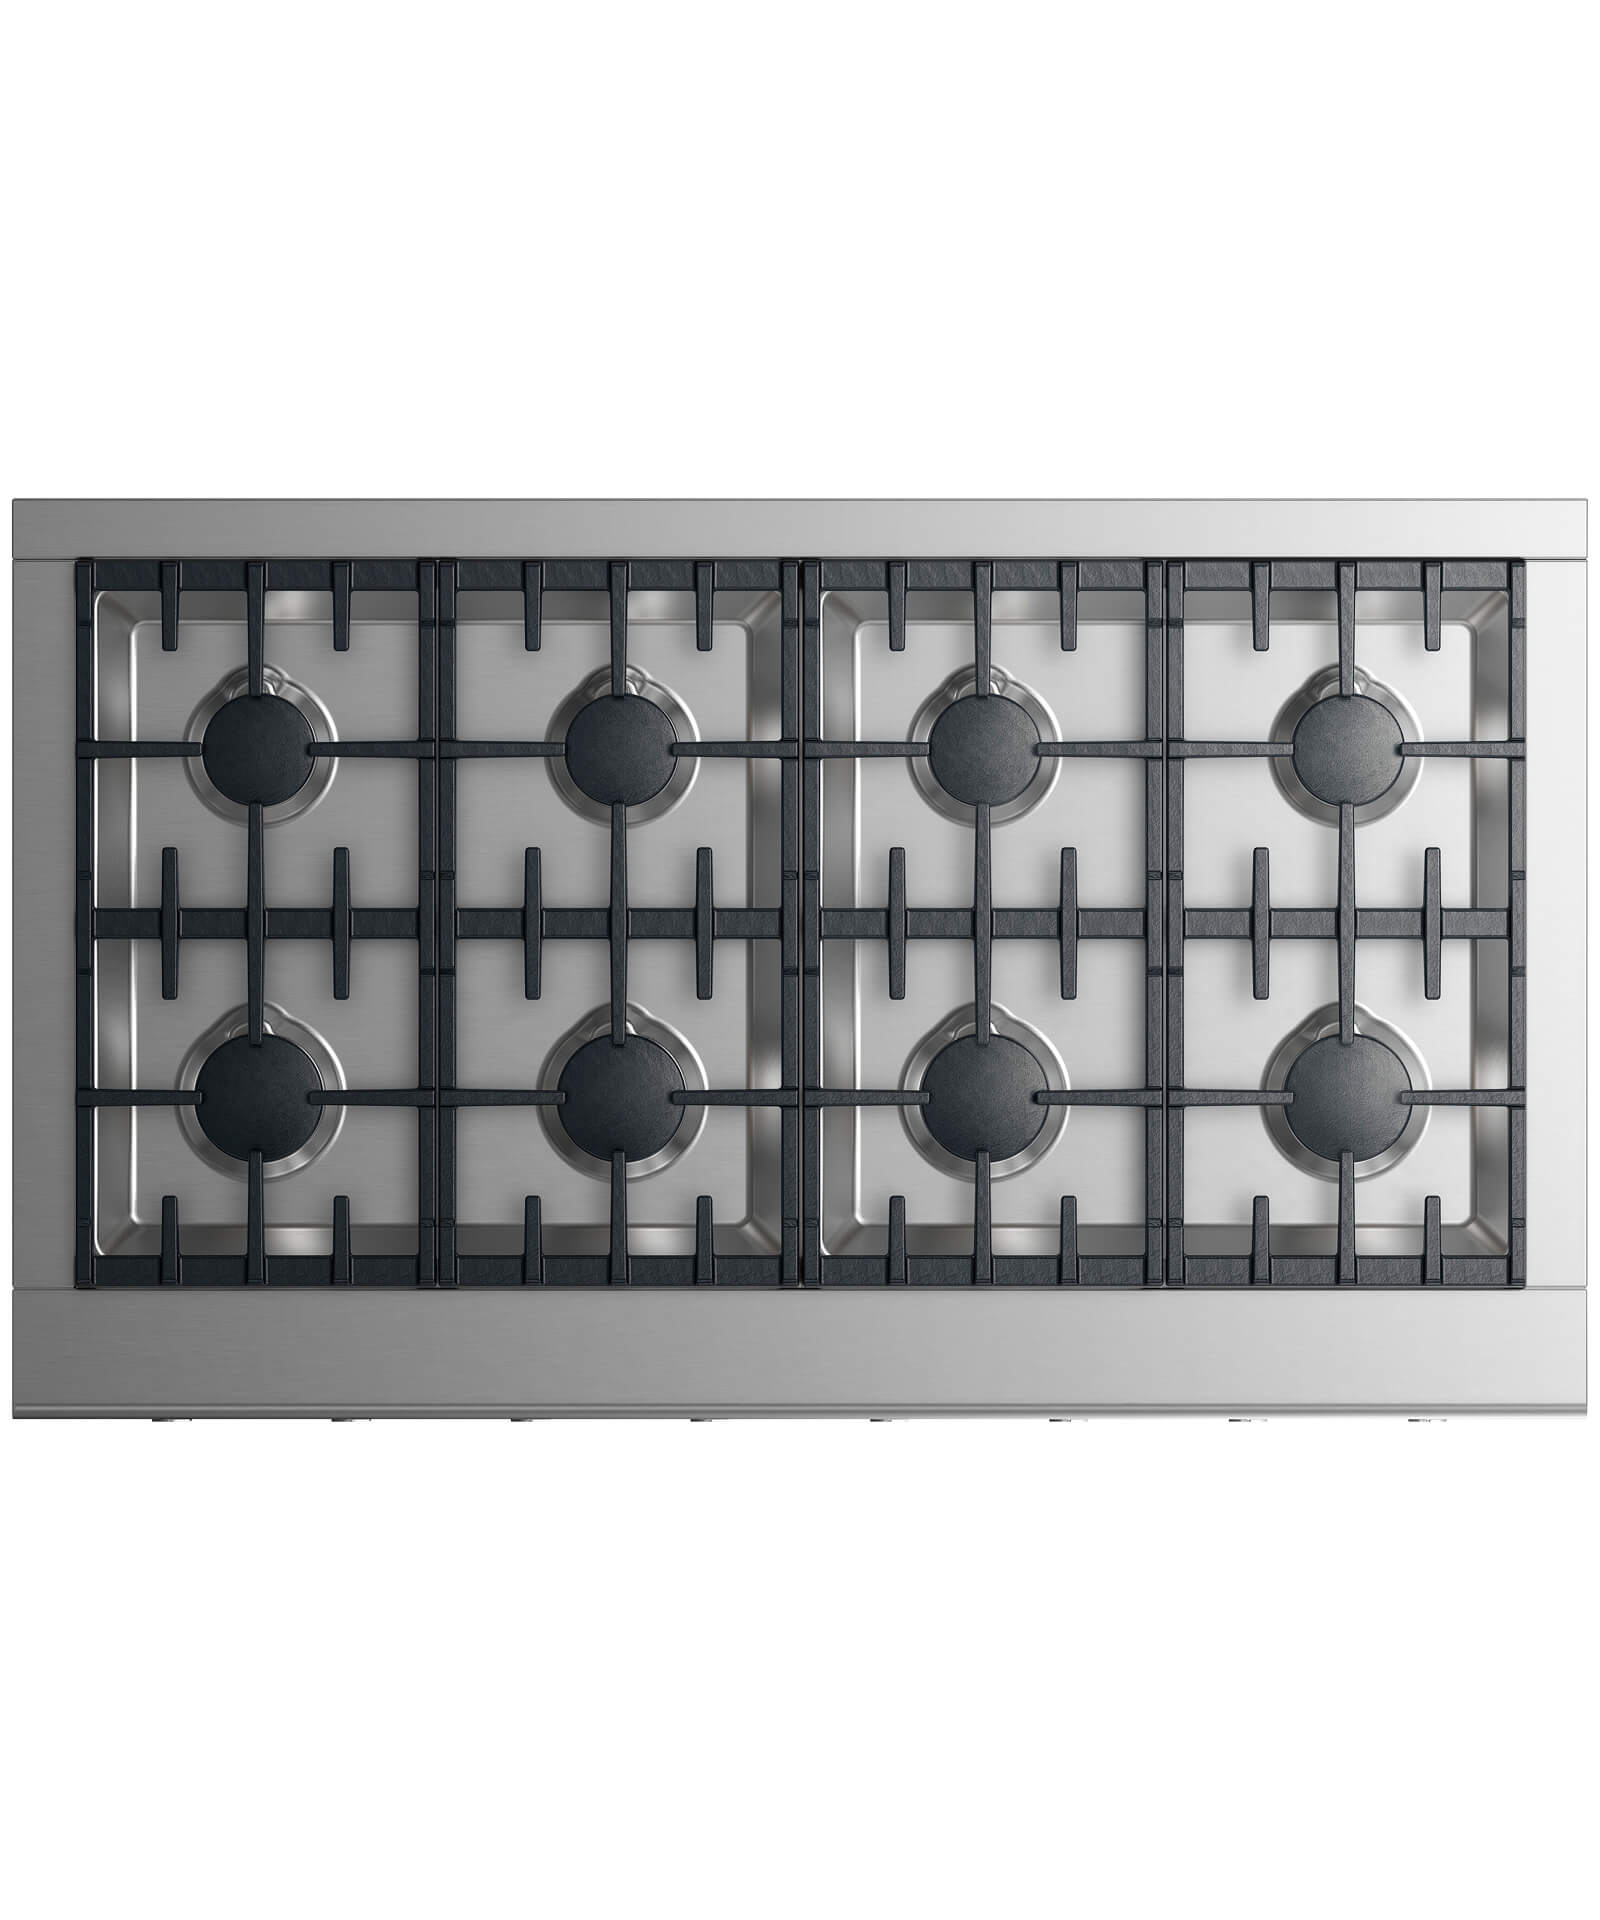 Gas Cooktop 48